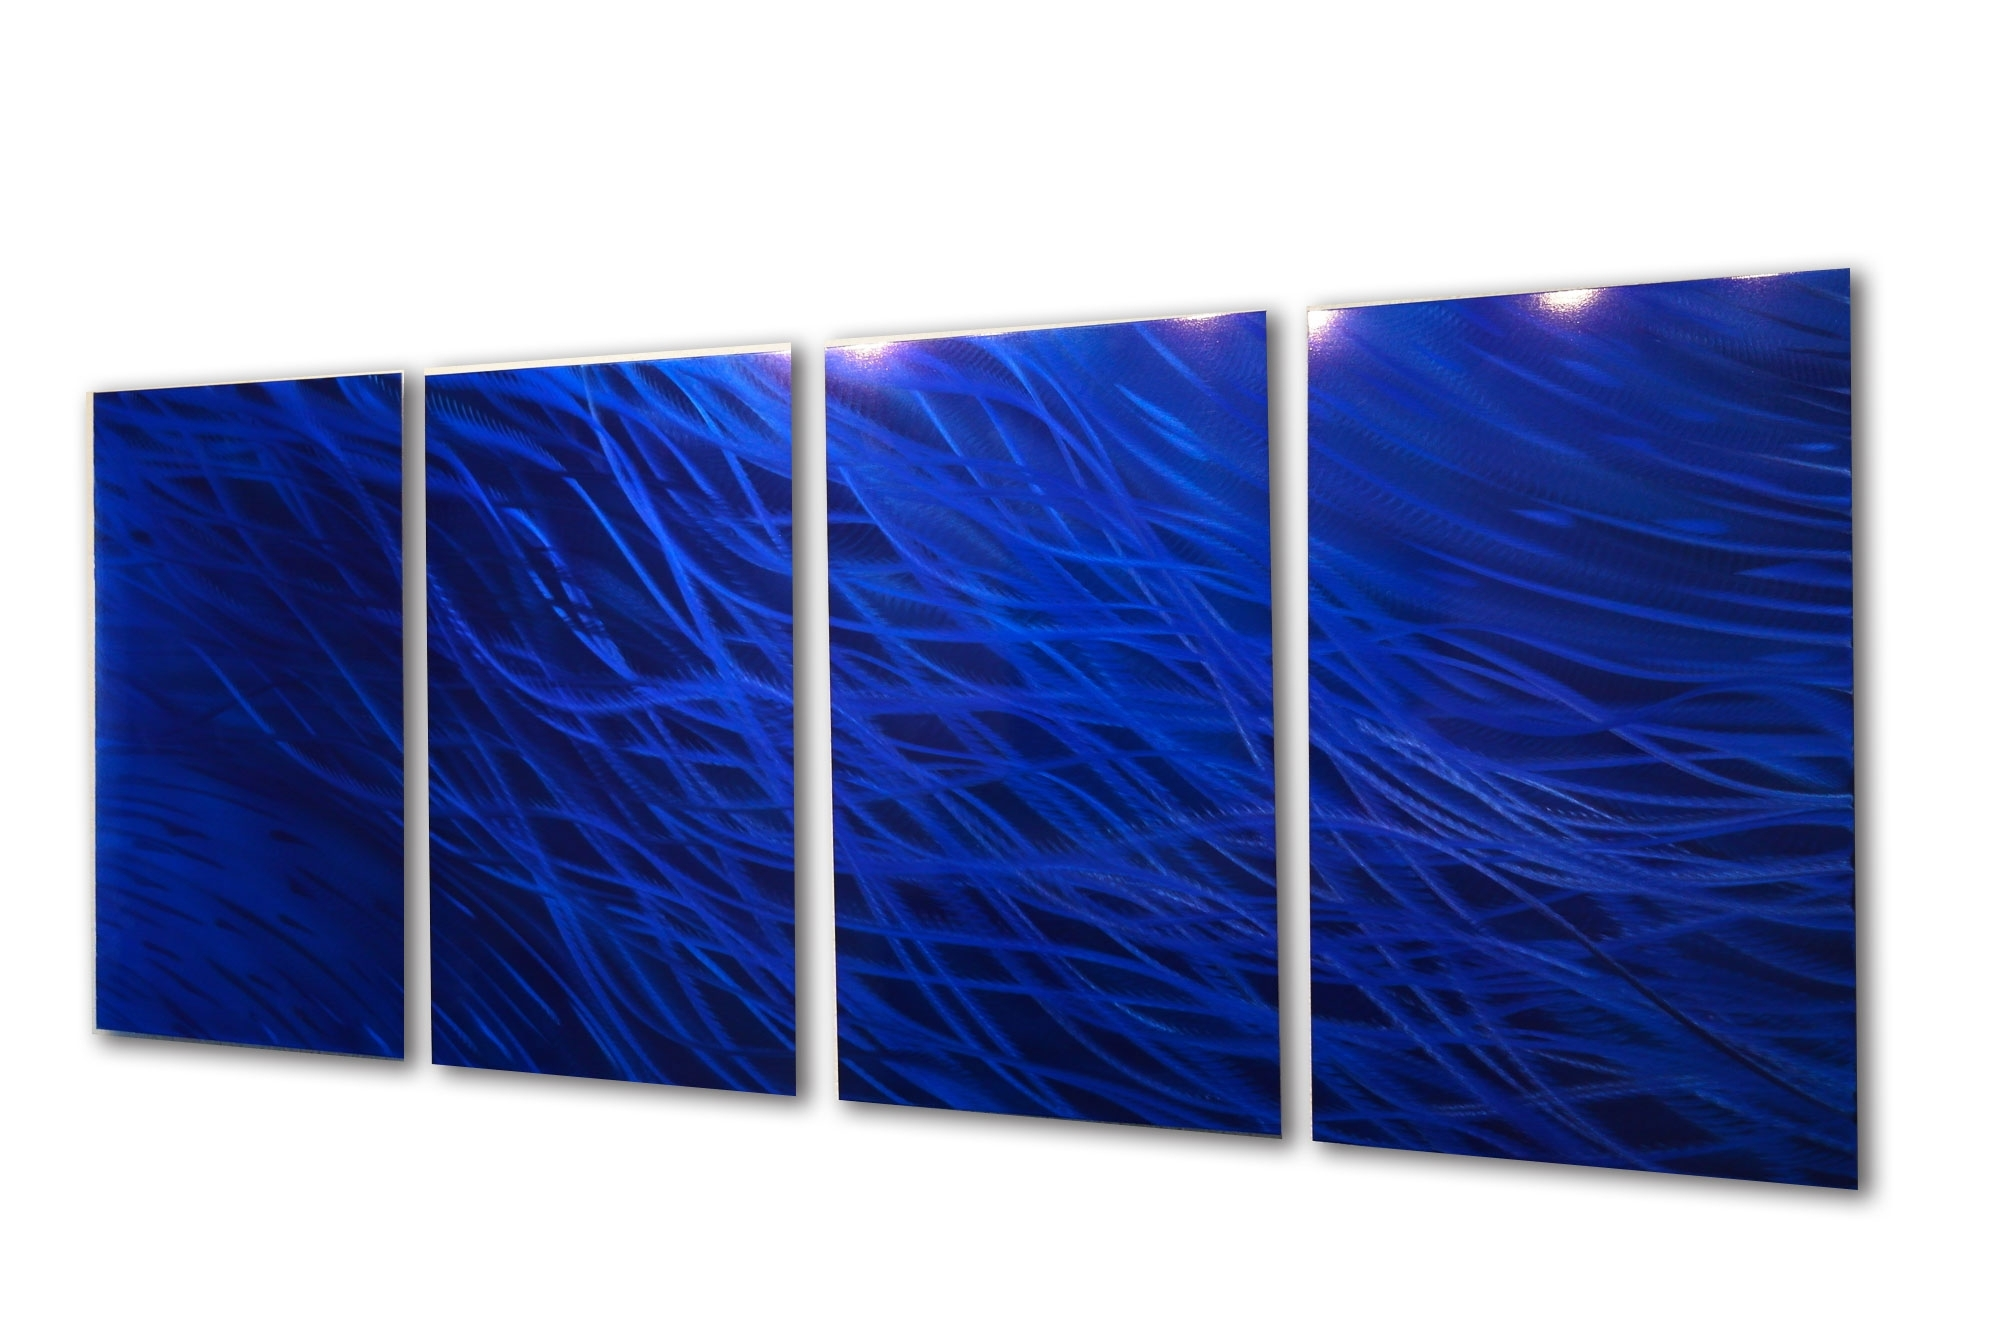 Well Known Dark Blue Wall Art Pertaining To Ocean Dark Blue – Metal Wall Art Abstract Sculpture Modern Decor (View 12 of 15)